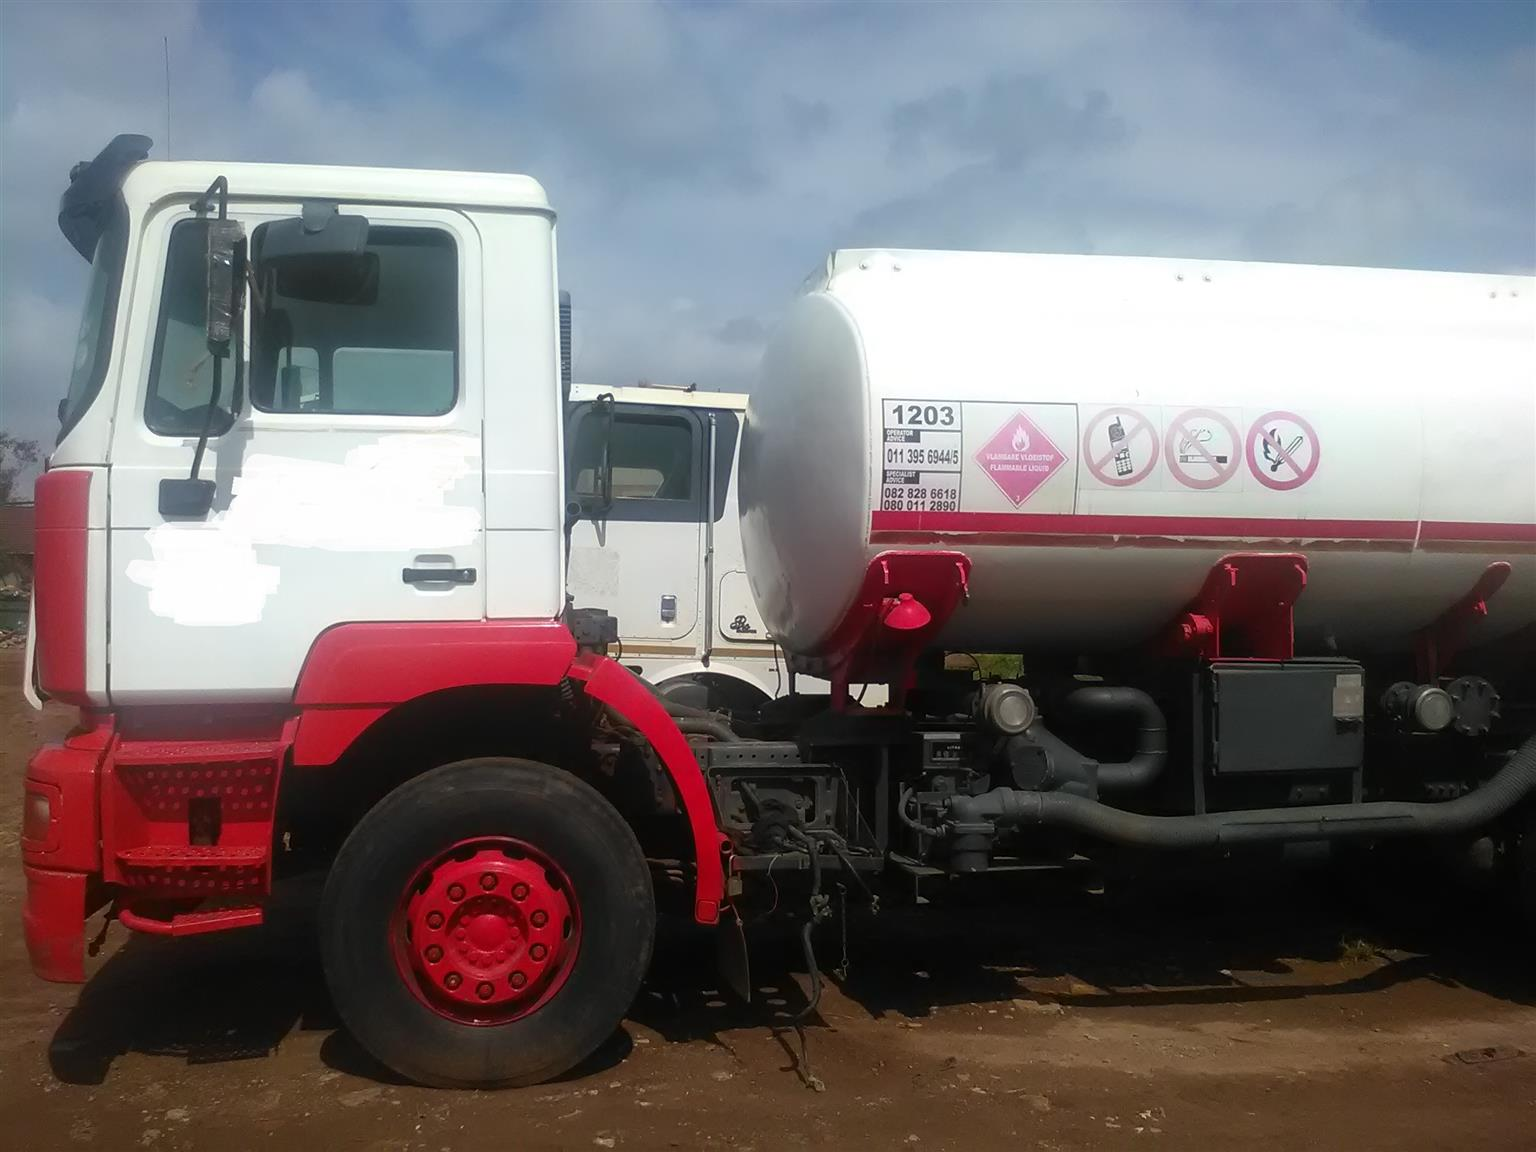 Massive savings on MAN fuel tanker